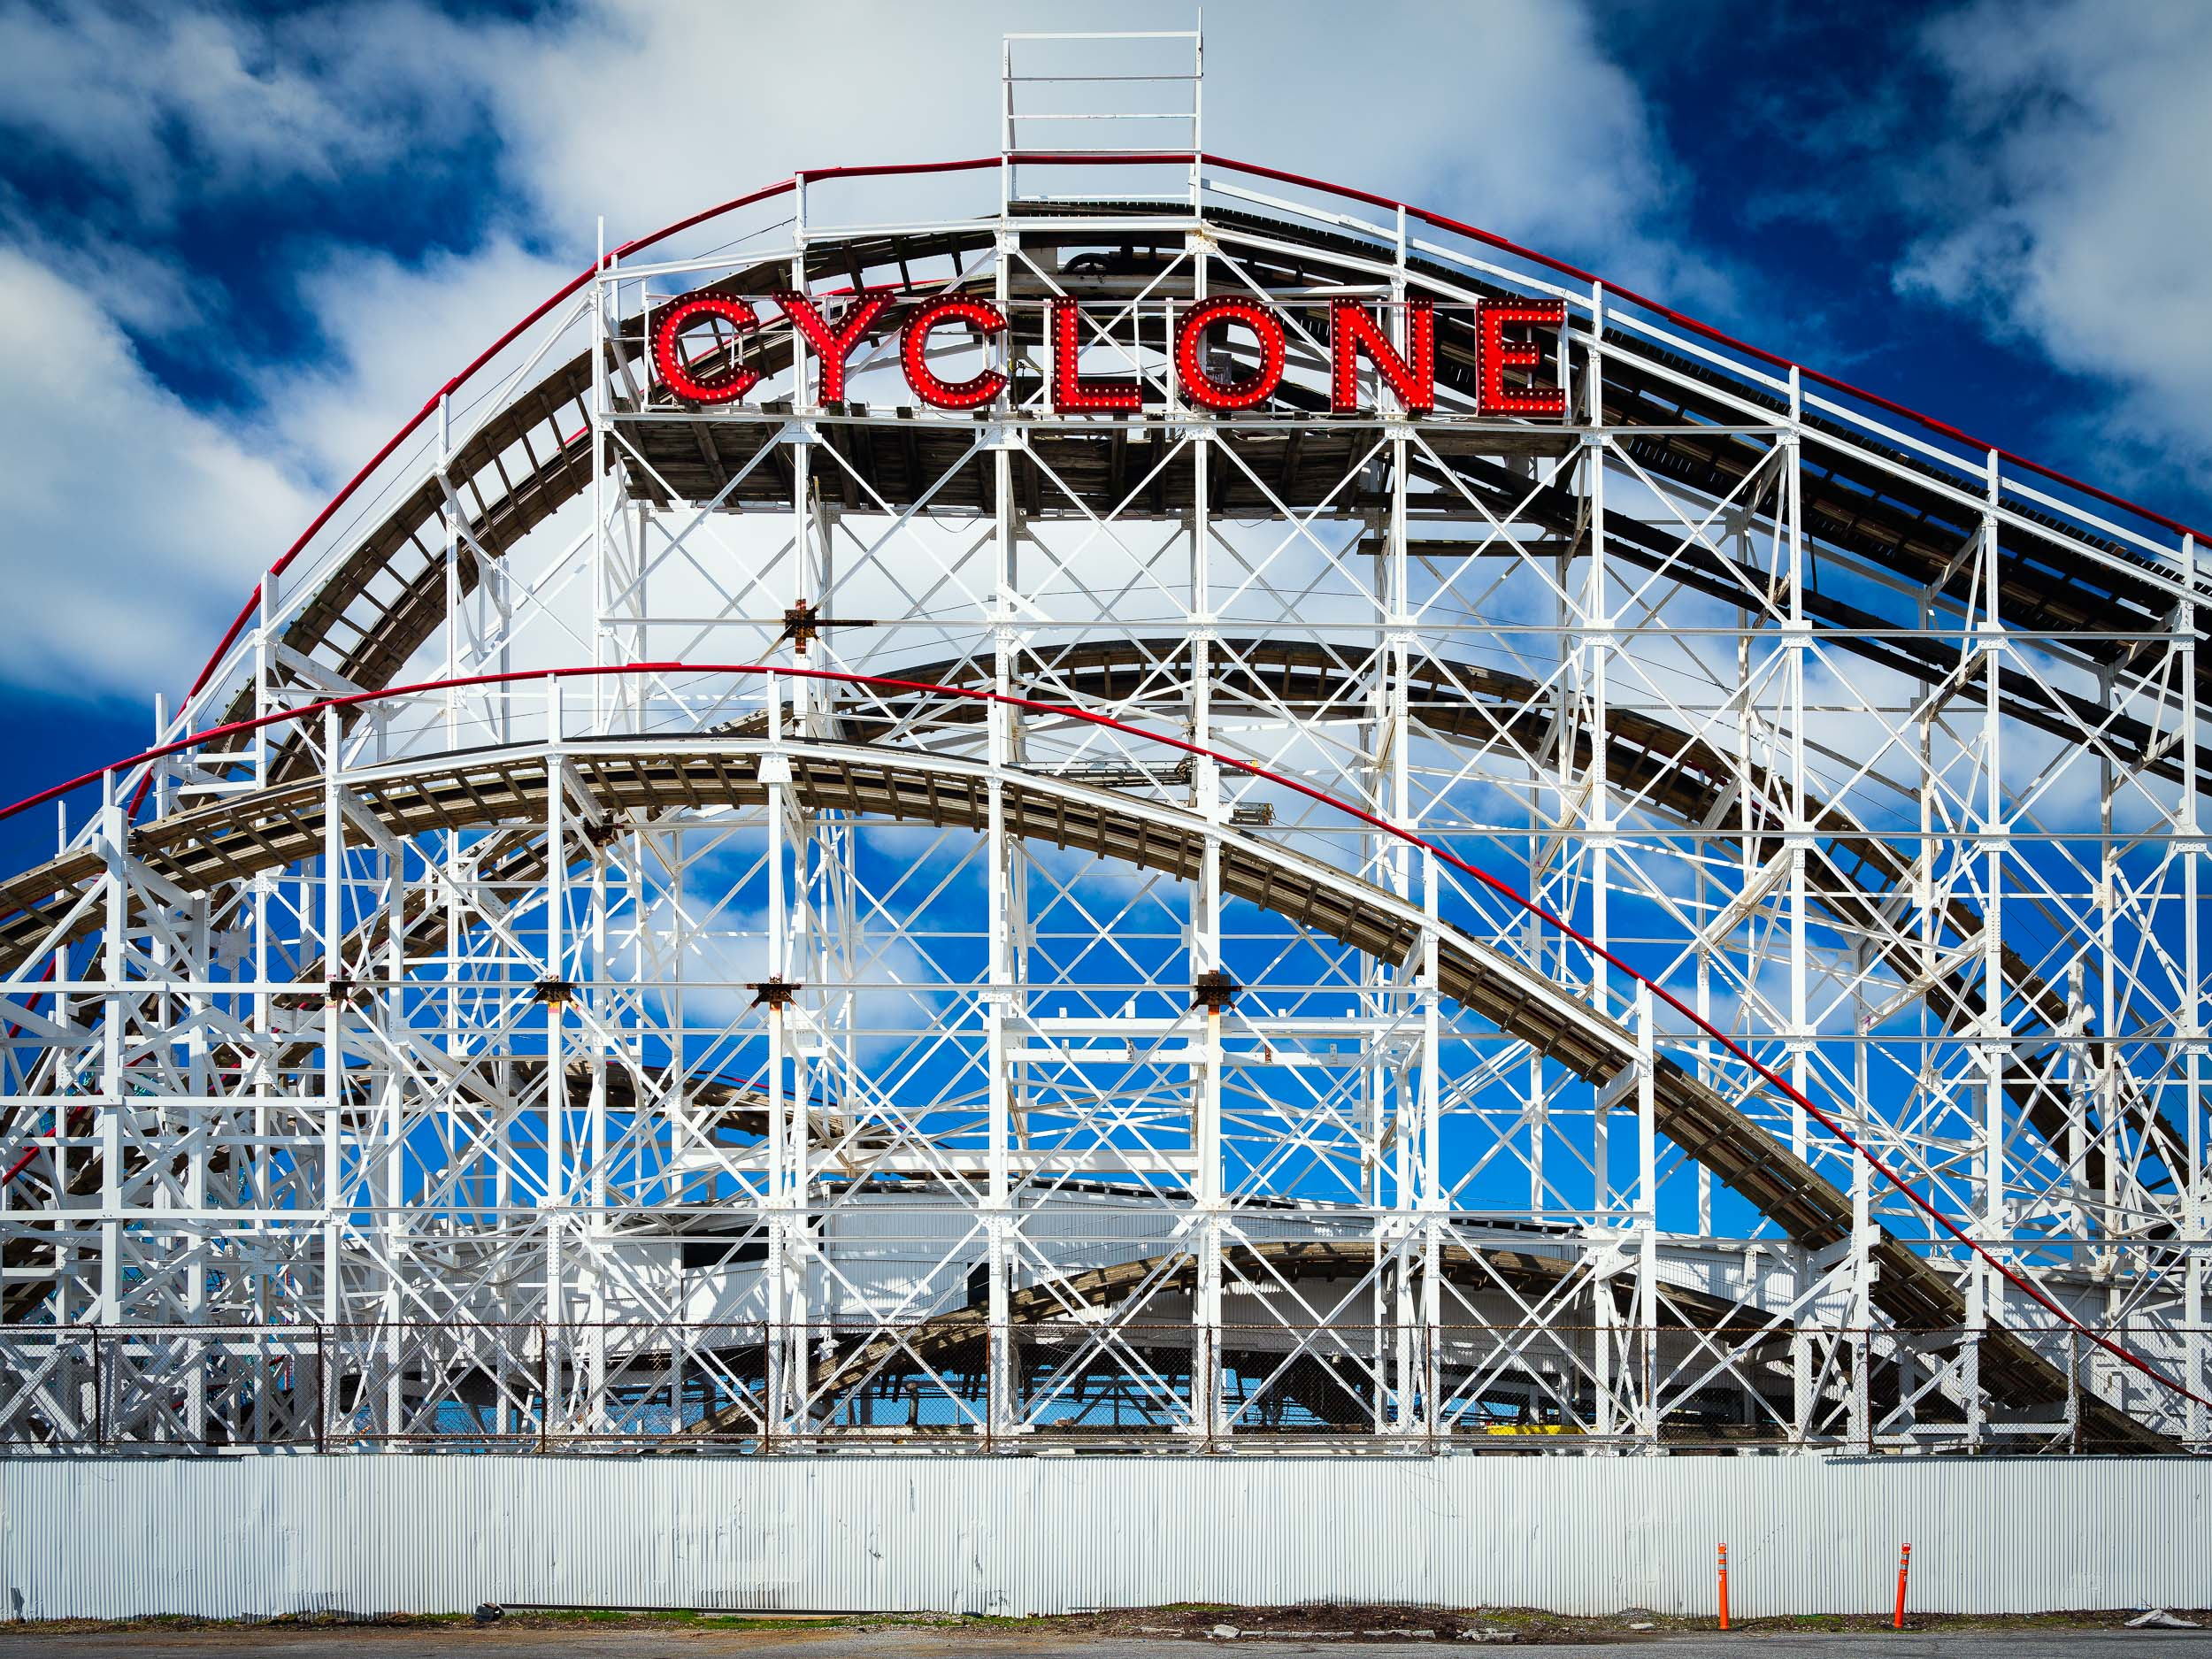 The iconic Cyclone roller coaster, built in 1927